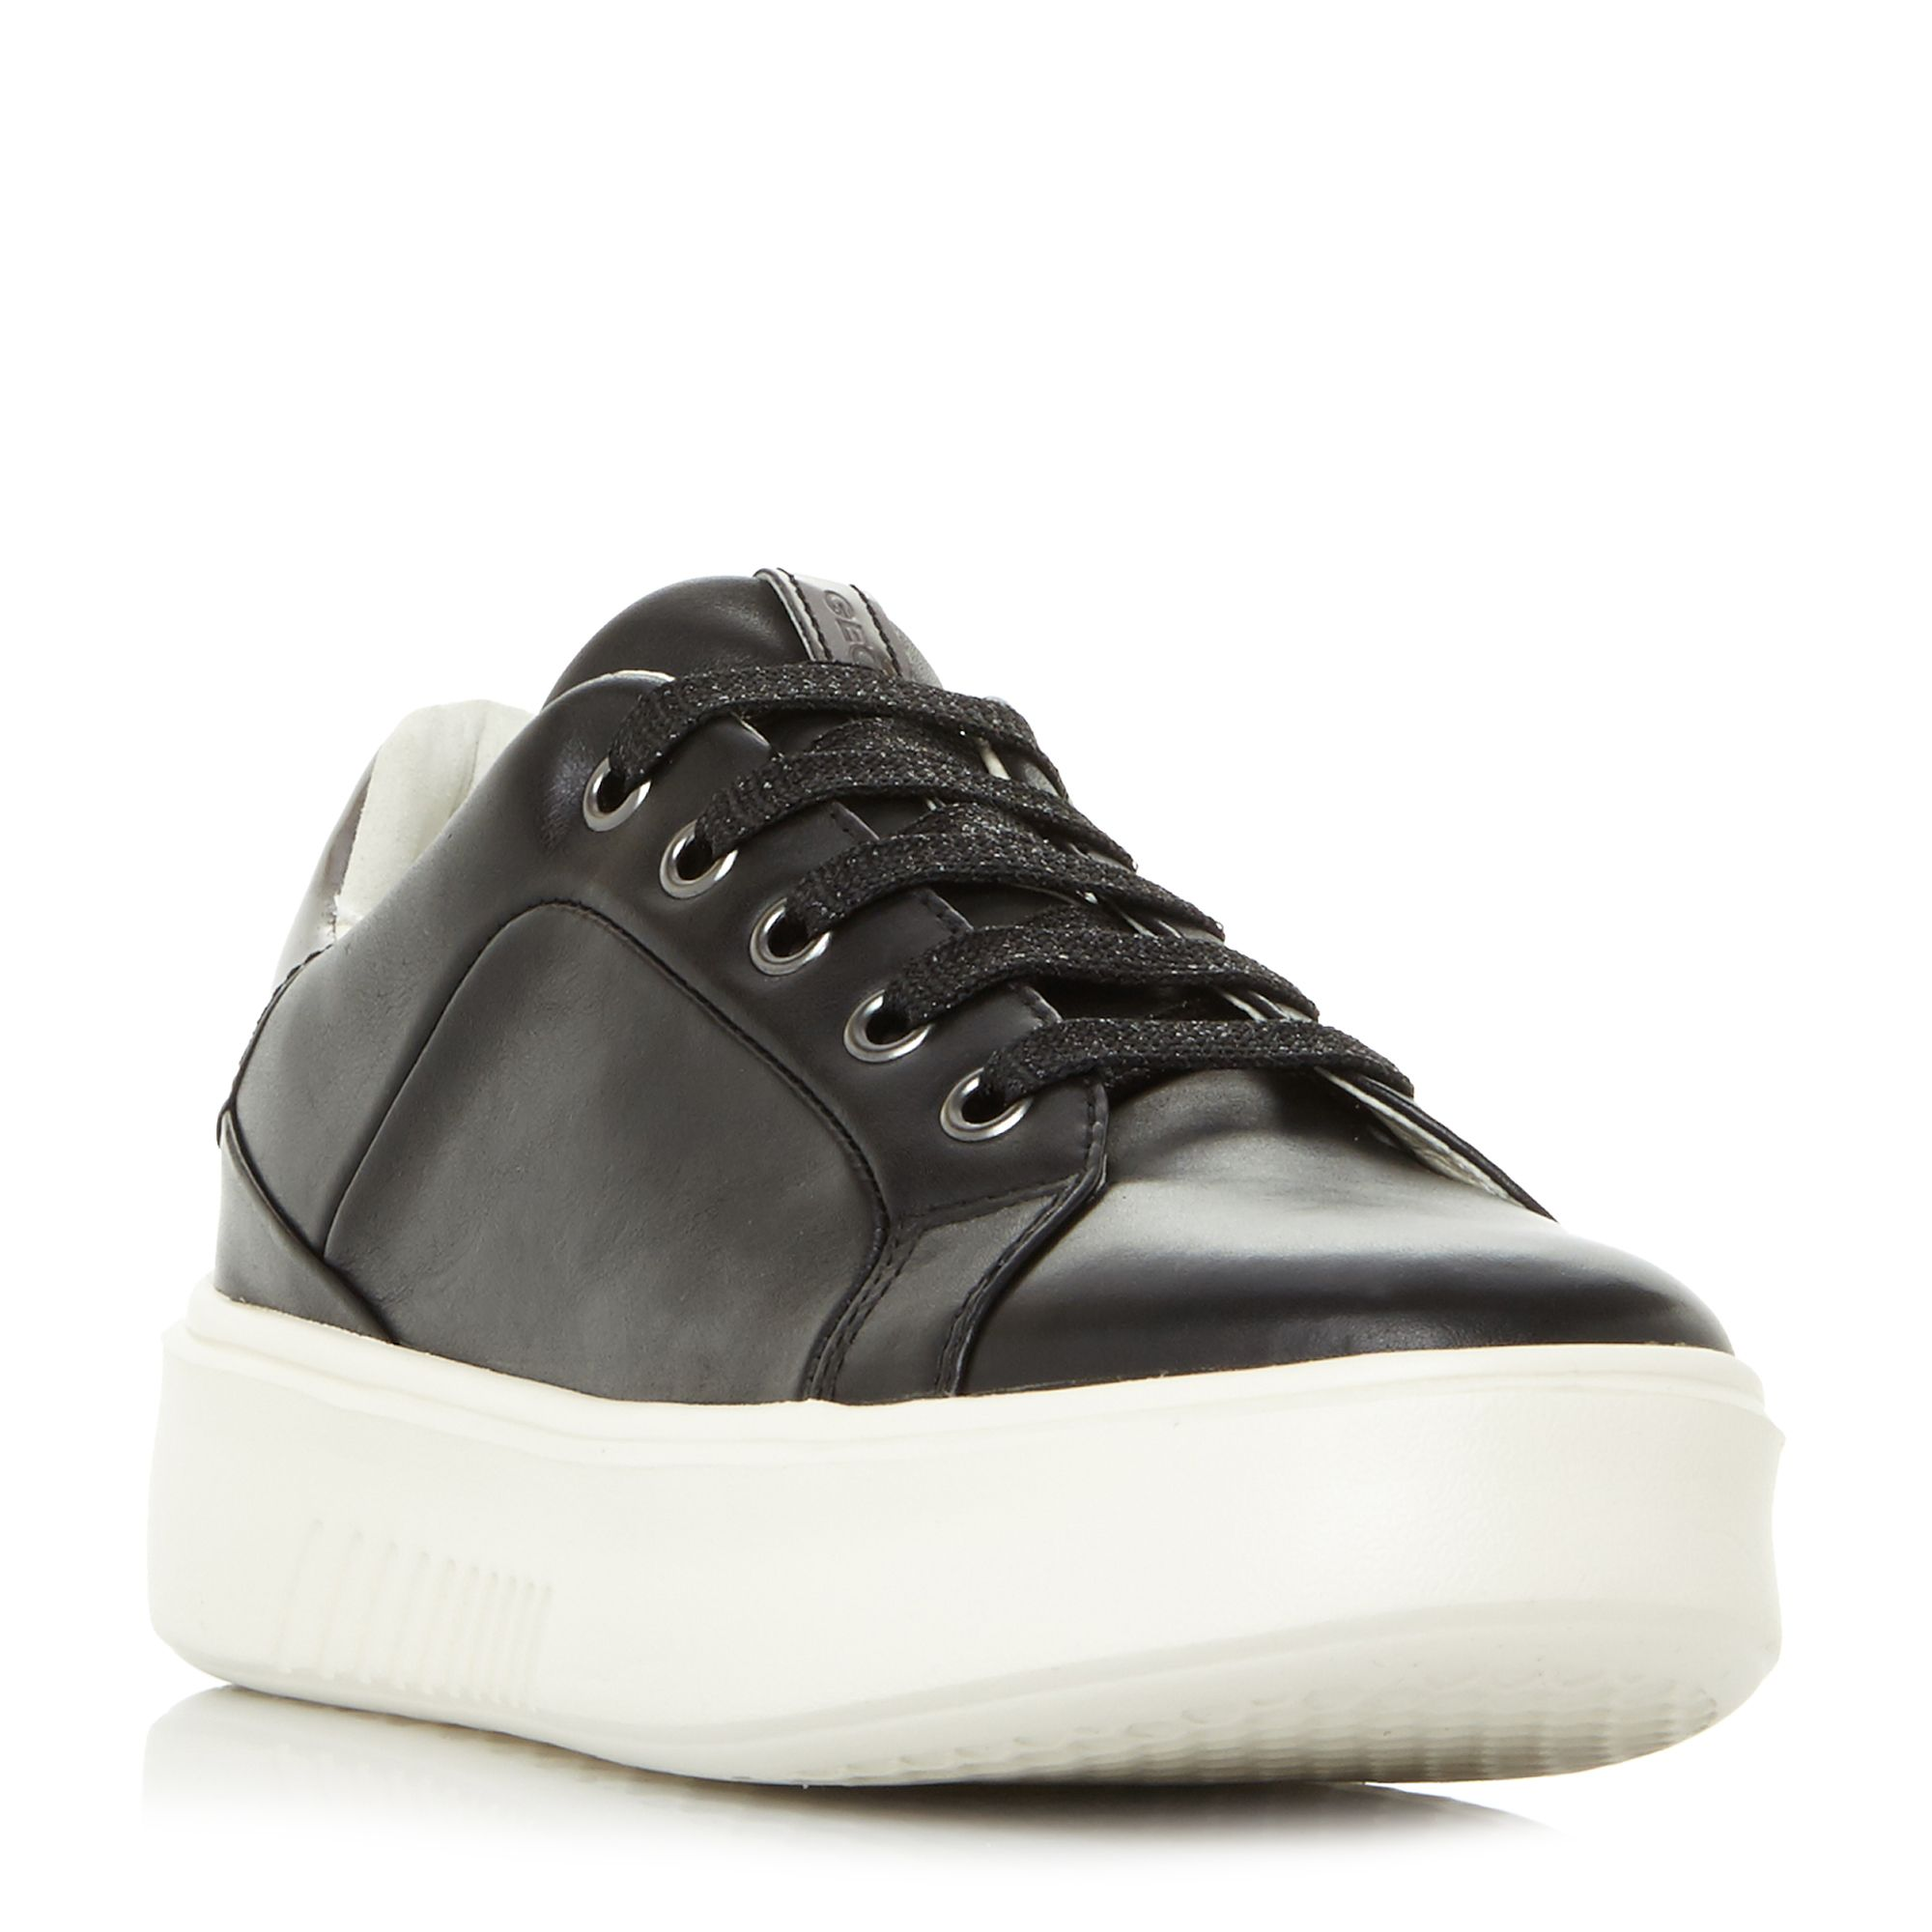 Geox D Nhenbus A Exaggerated Sole Trainers, Black